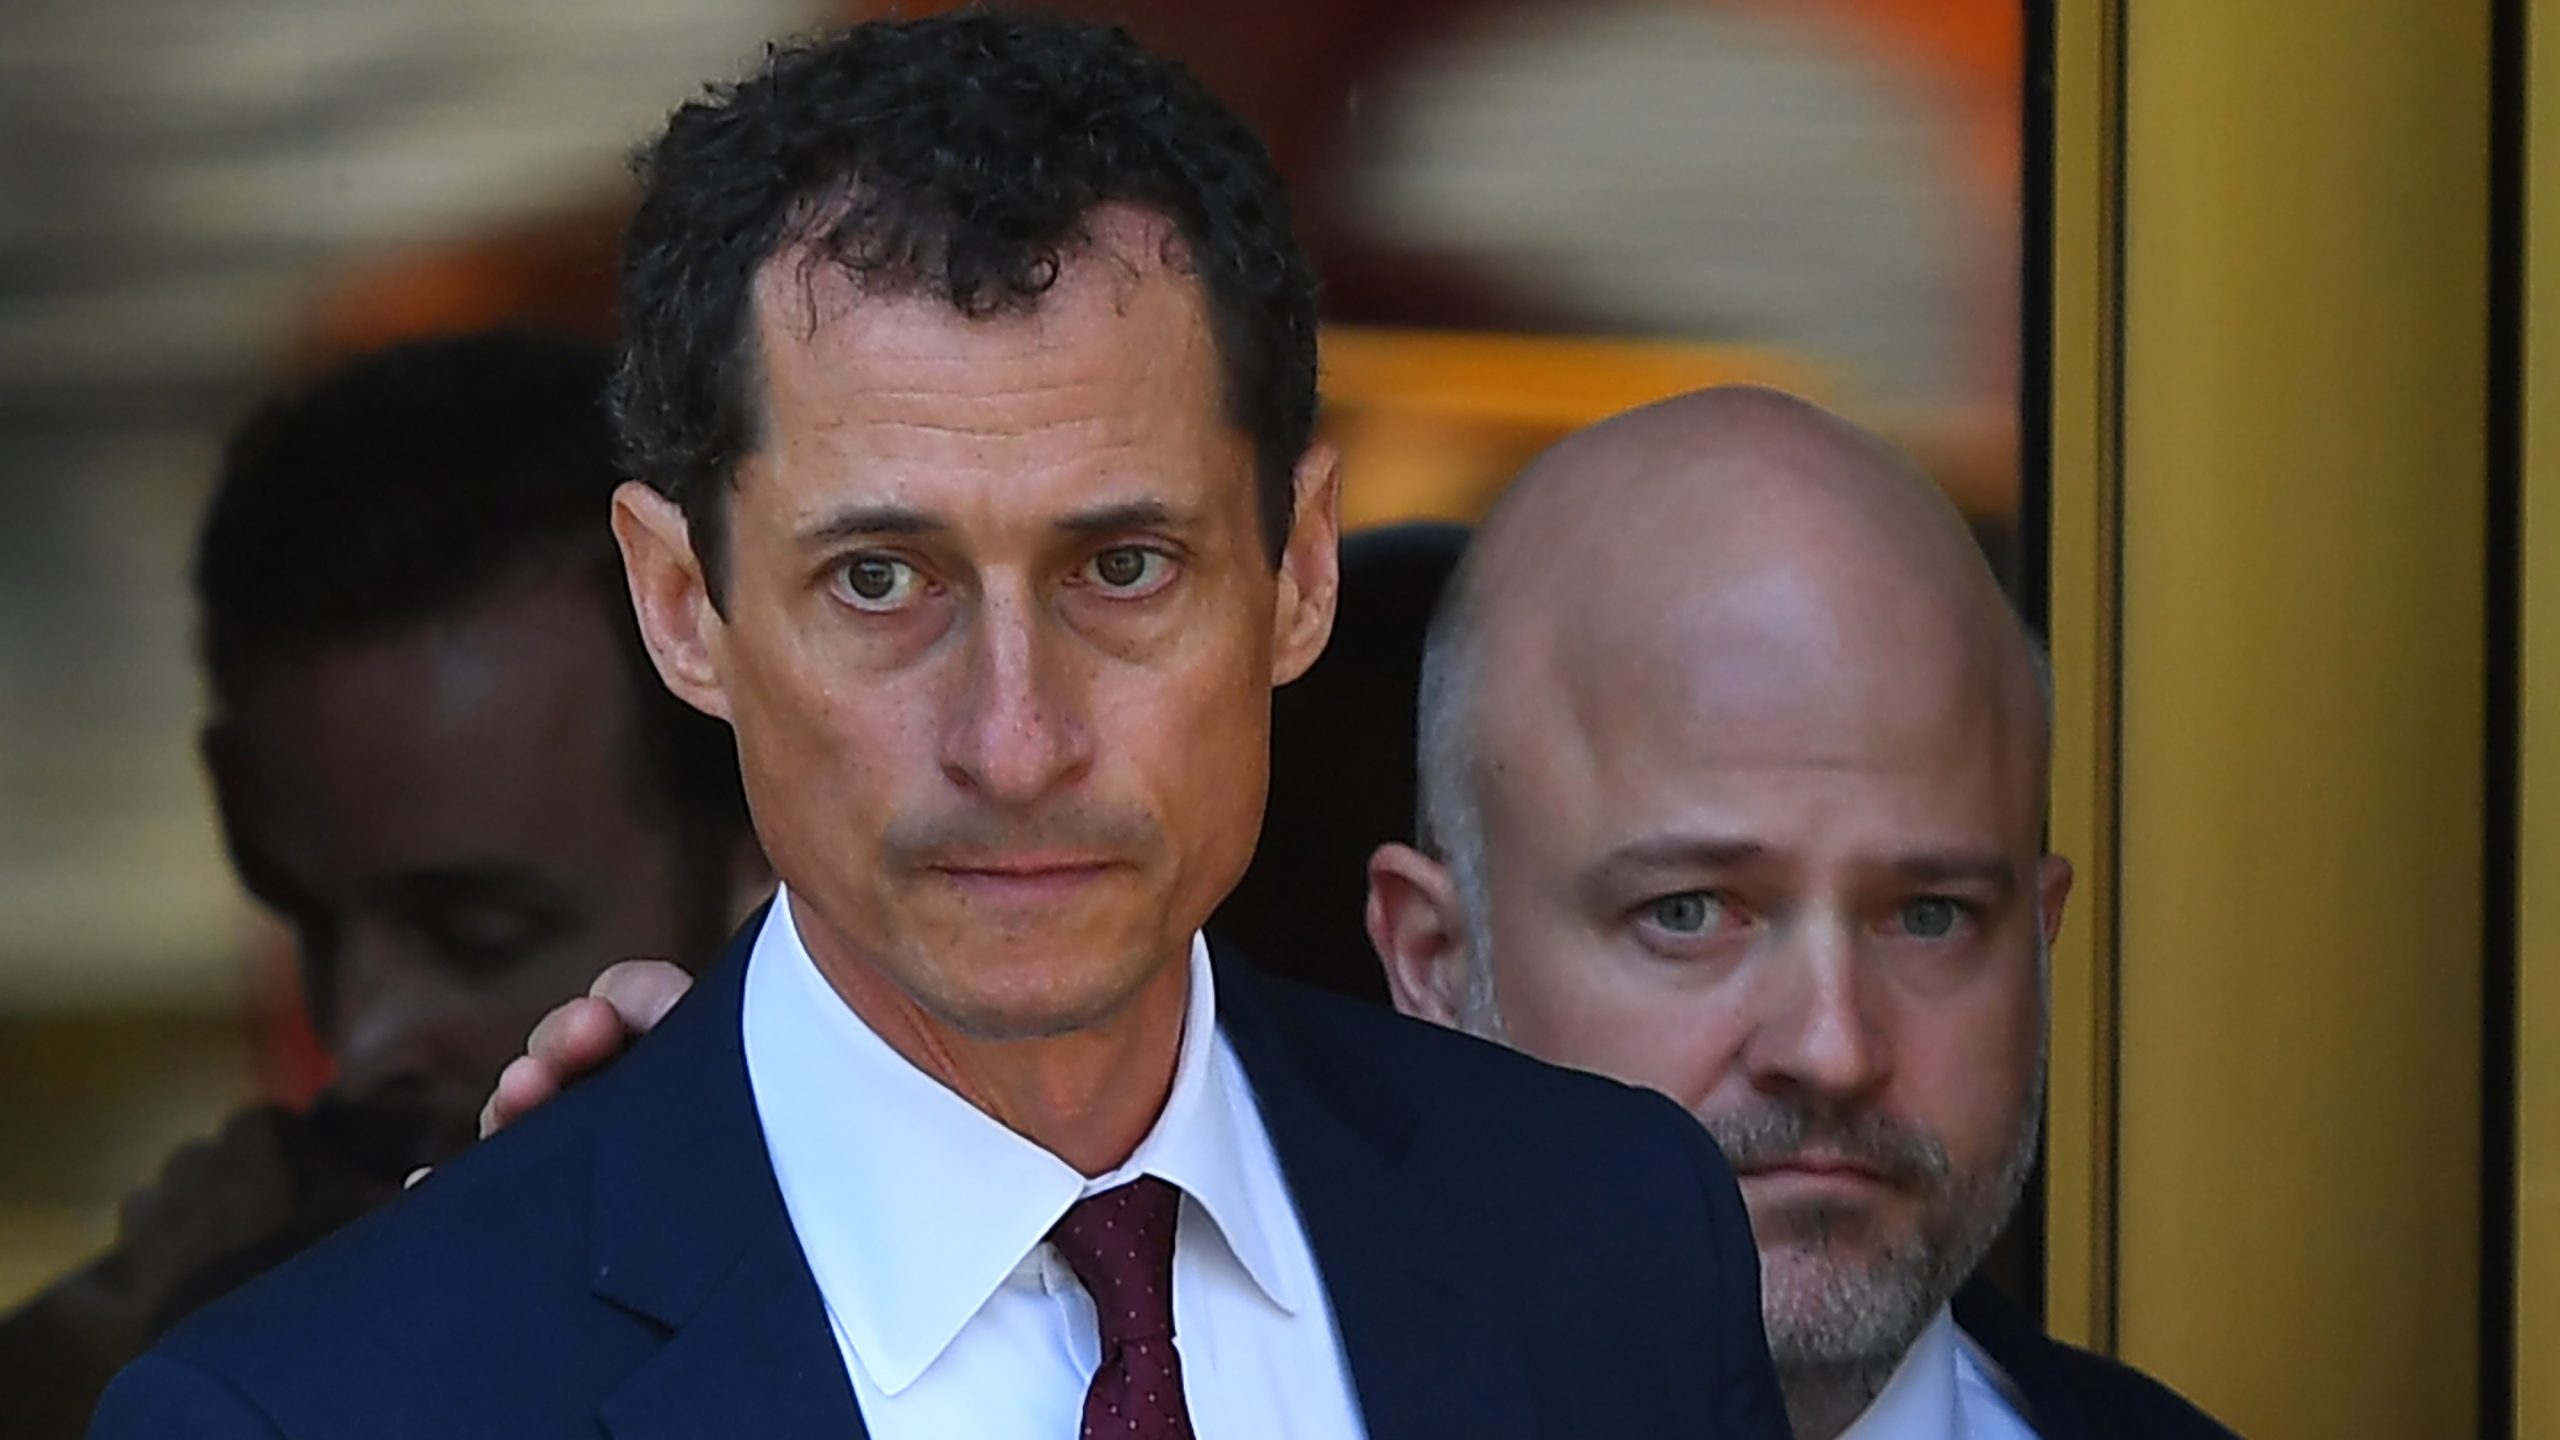 Former US Congressman Anthony Weiner leaves Federal Court in New York on May 19, 2017 after pleading guilty to one count of sending obscene messages to a minor. (Credit: TIMOTHY A. CLARY/AFP/Getty Images)